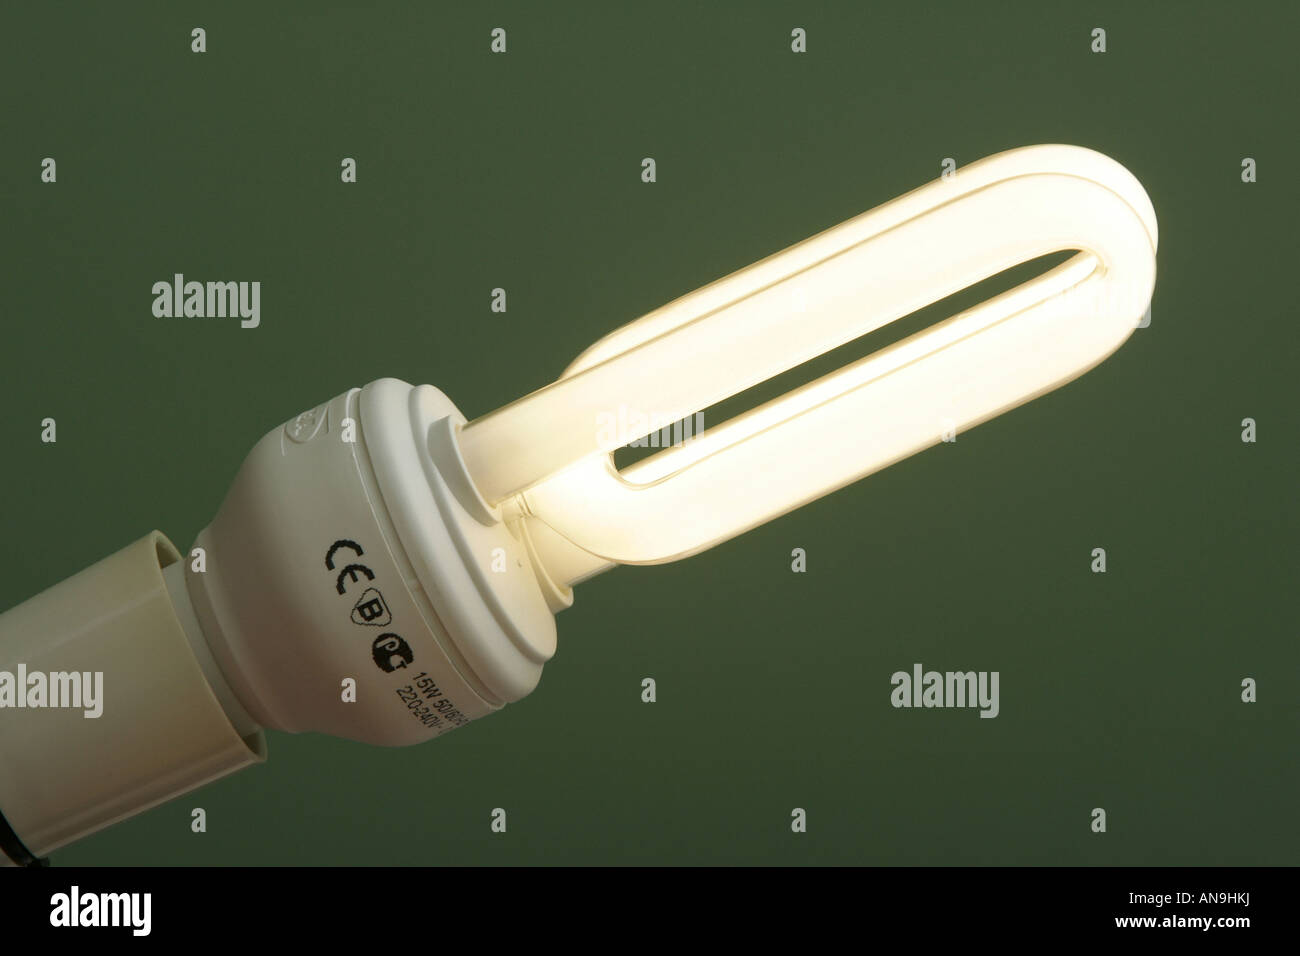 A CE MARKED ENERGY SAVER LIGHT BULB PICTURE BY GARY DOAK - Stock Image